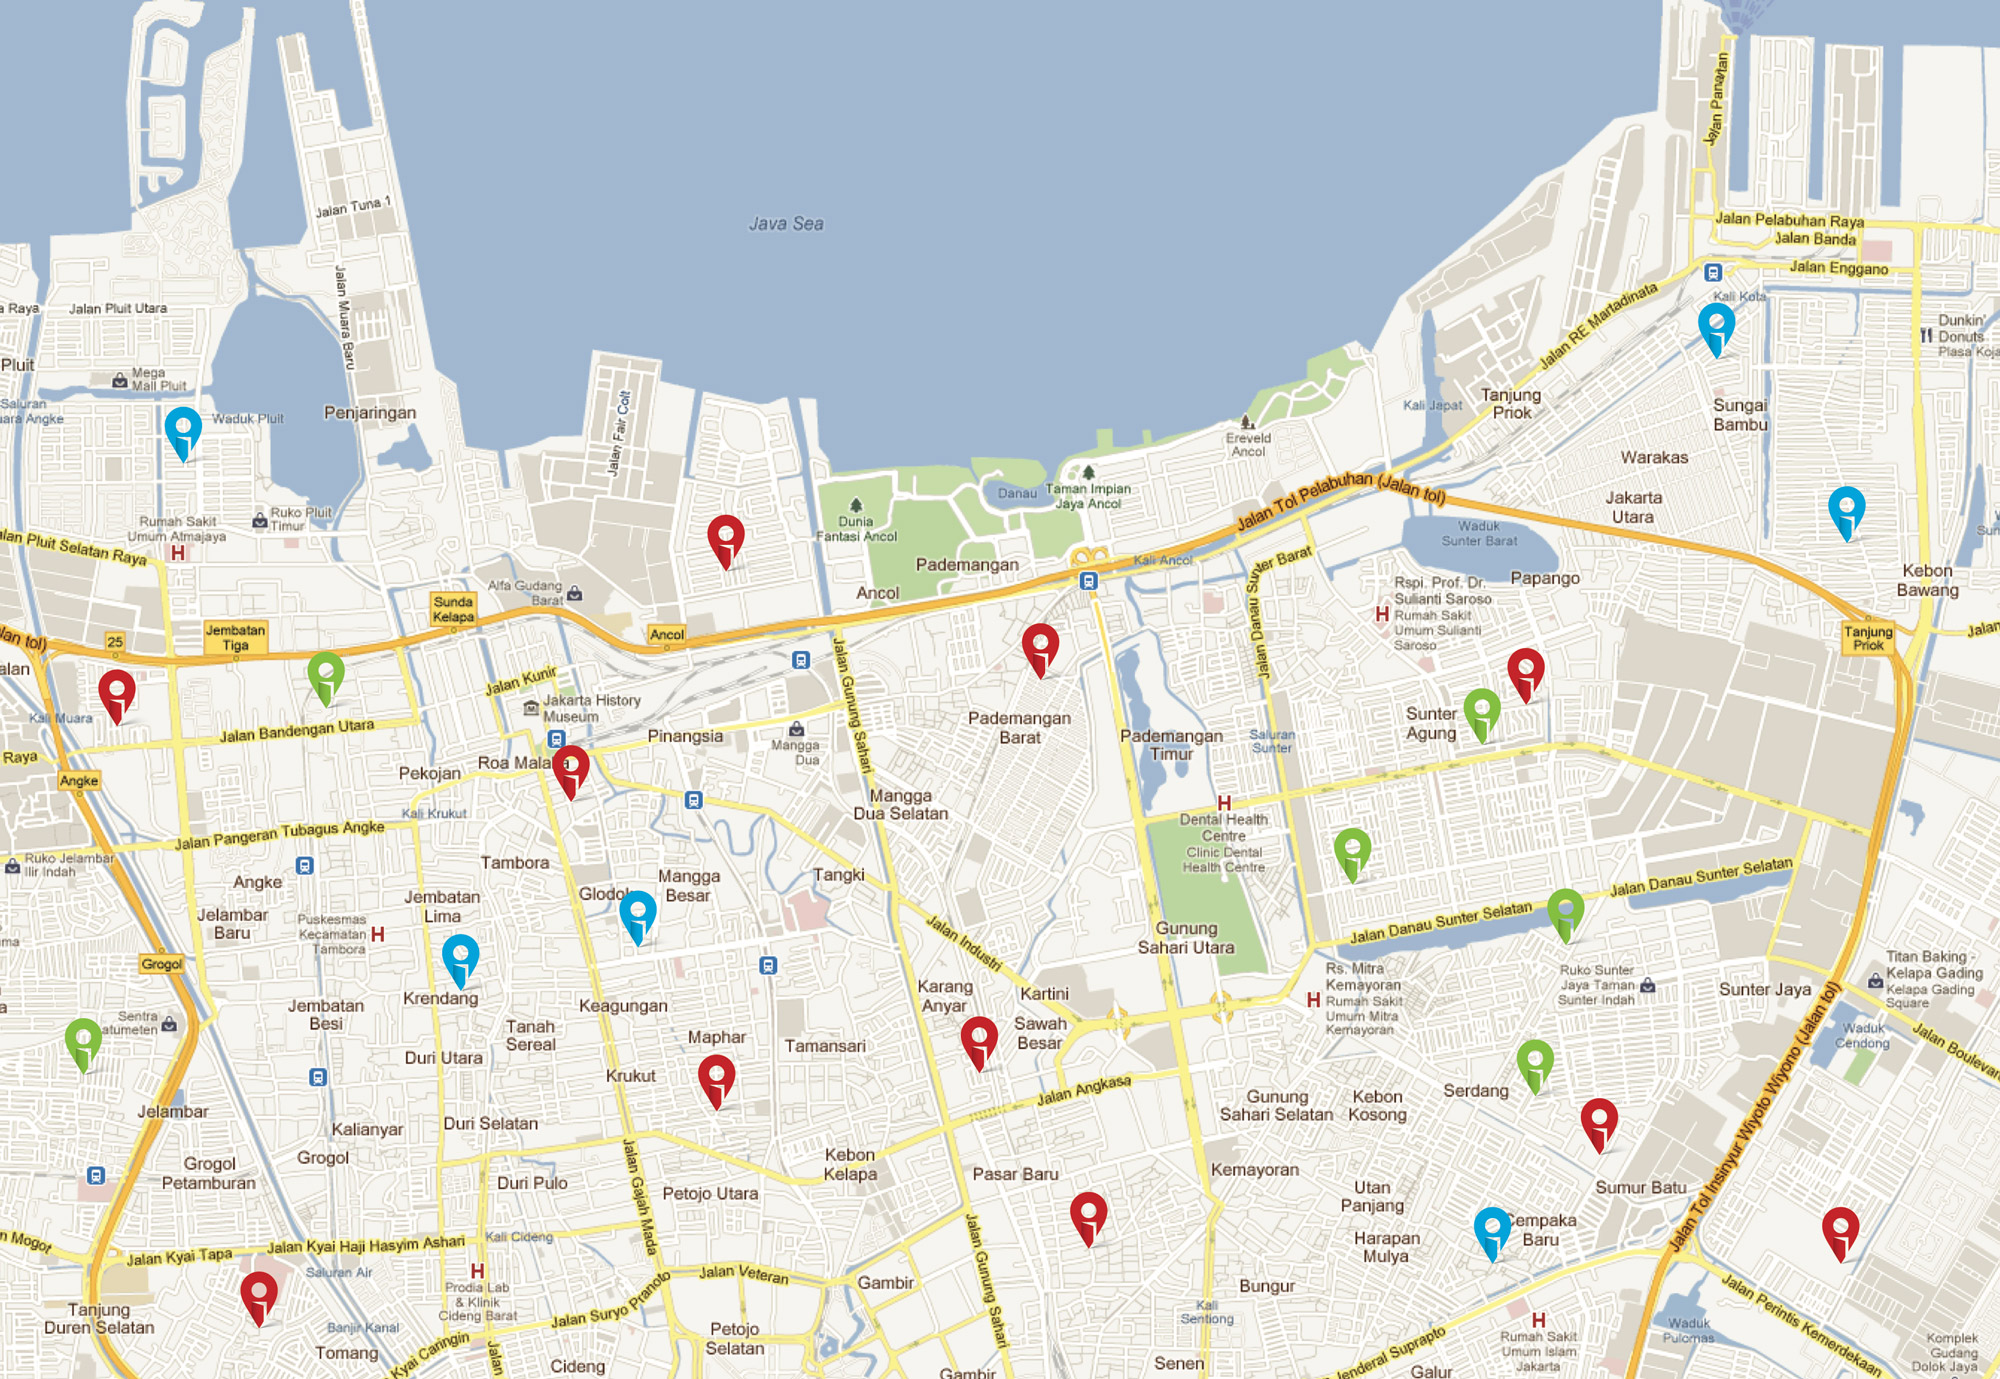 iProperty-Indonesia-Map-Sample.jpg